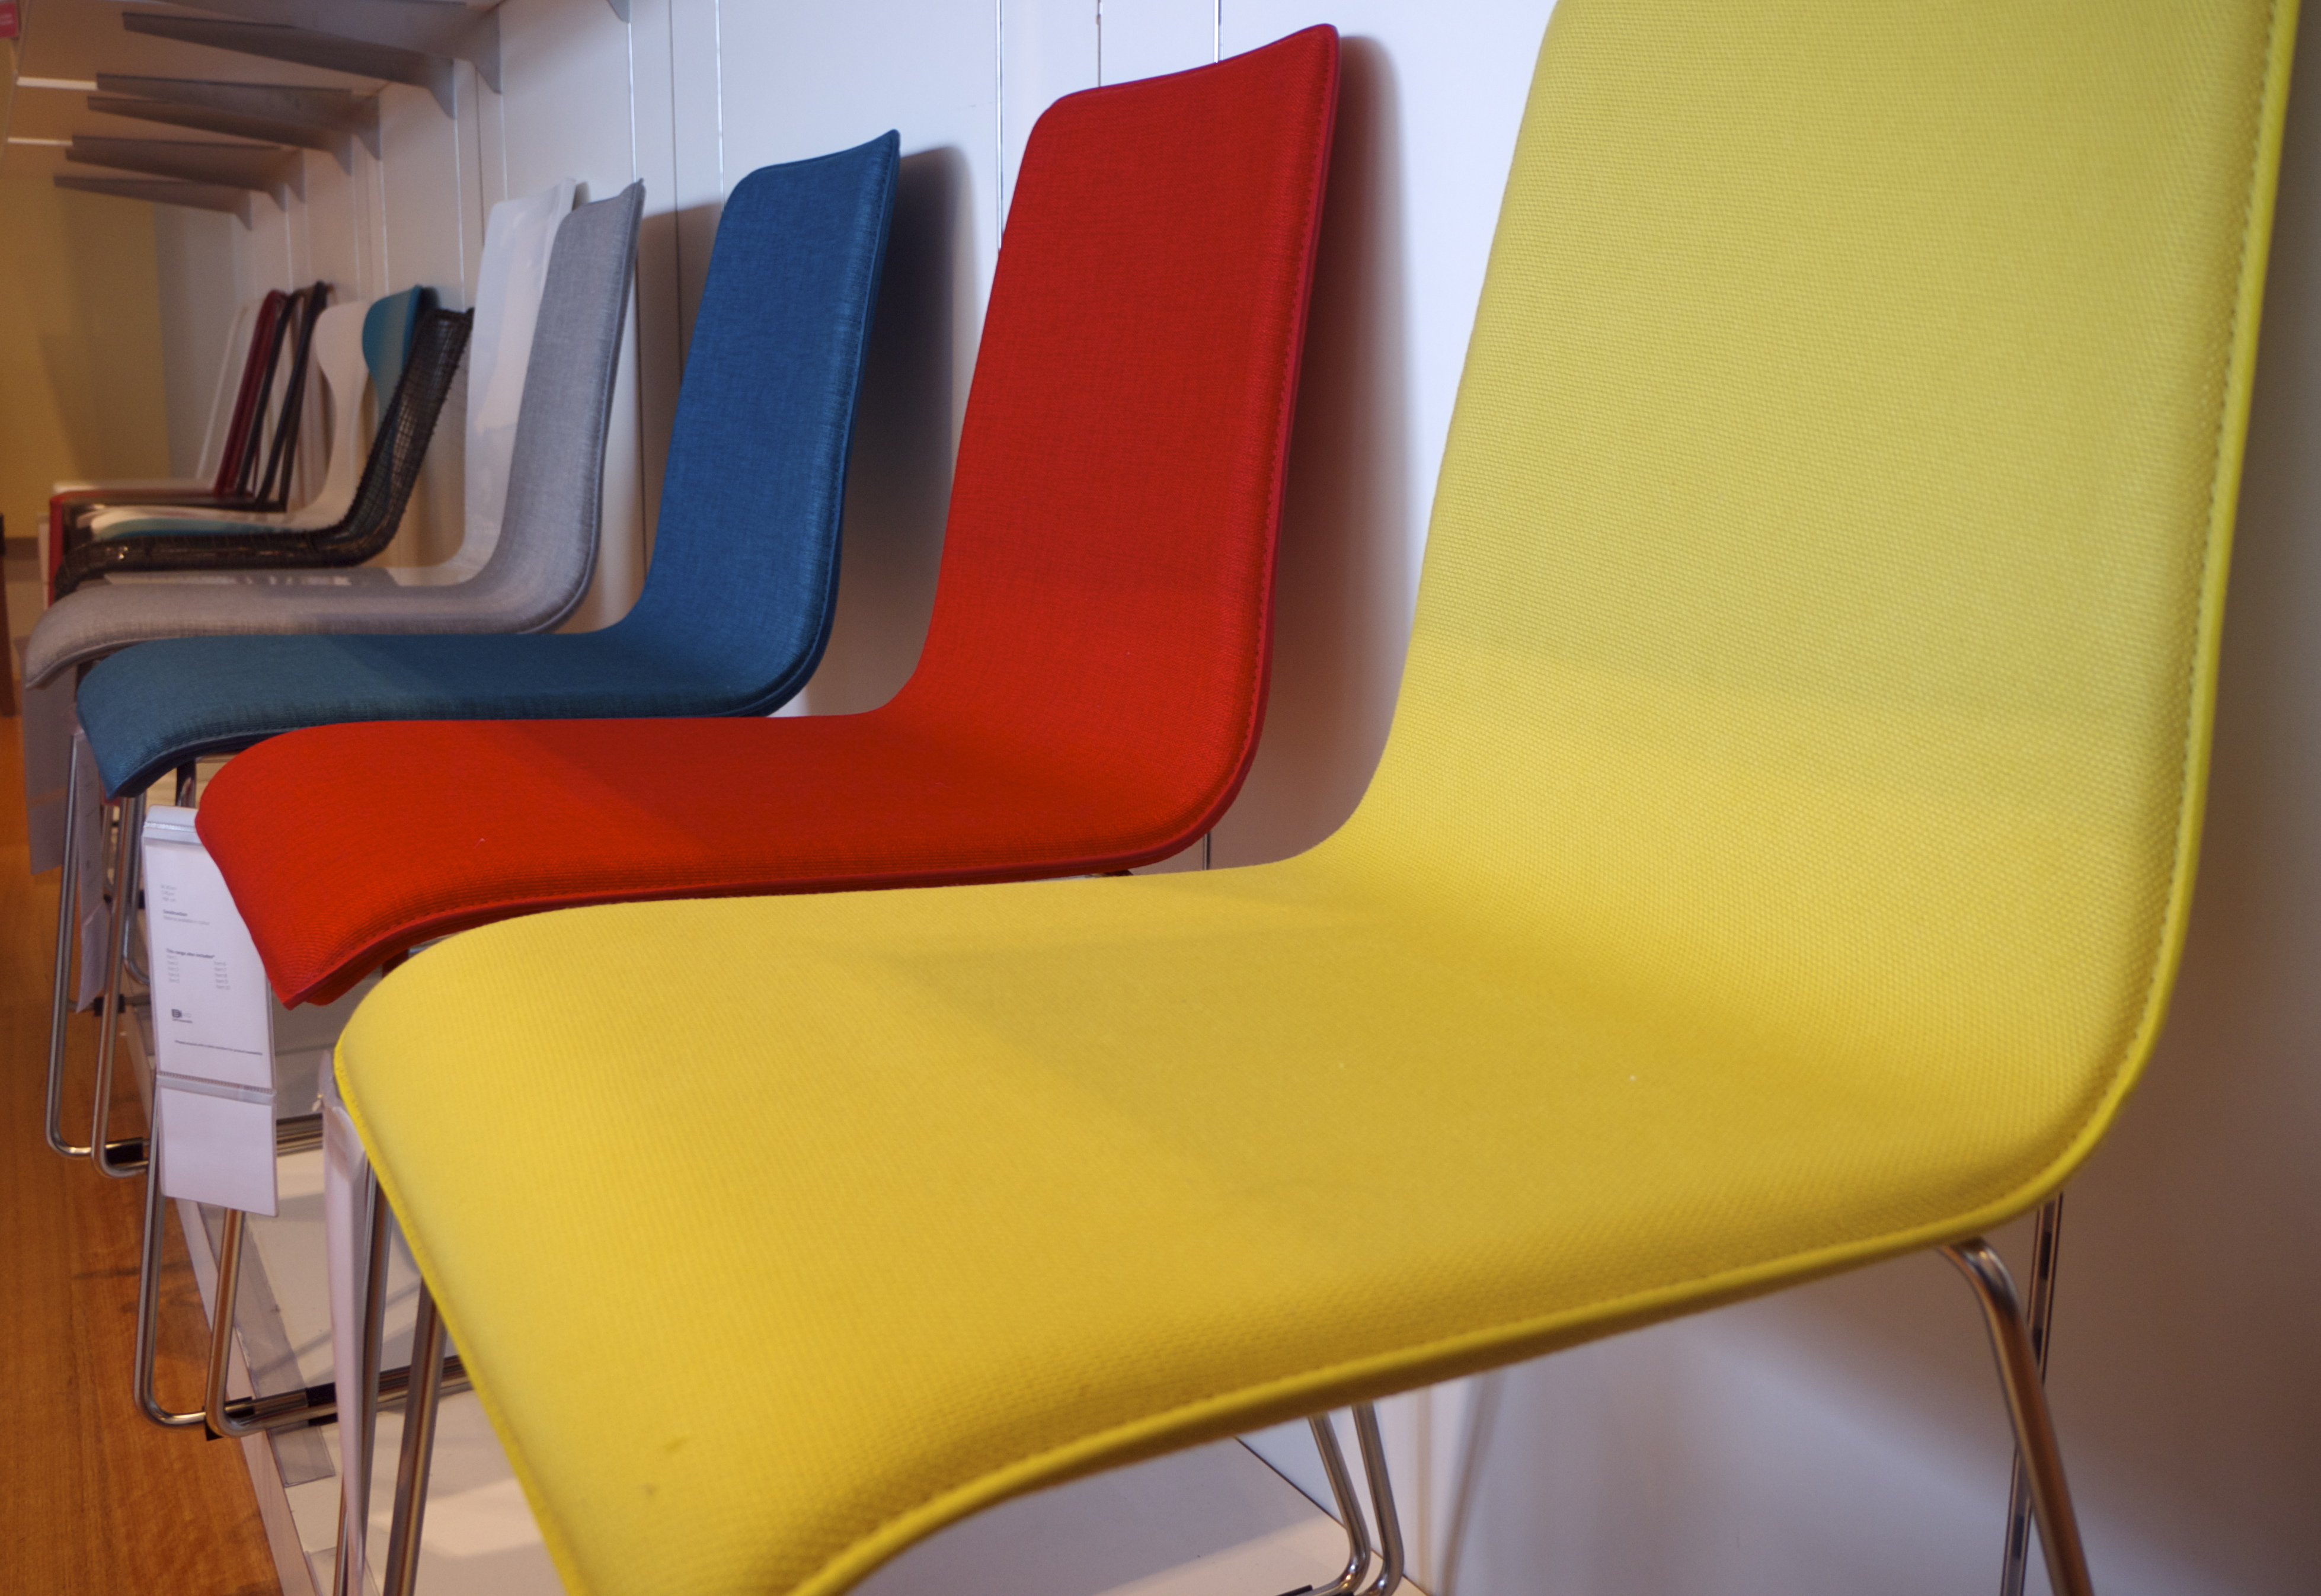 Freedom Top Ryde - Colourful Dining Chairs